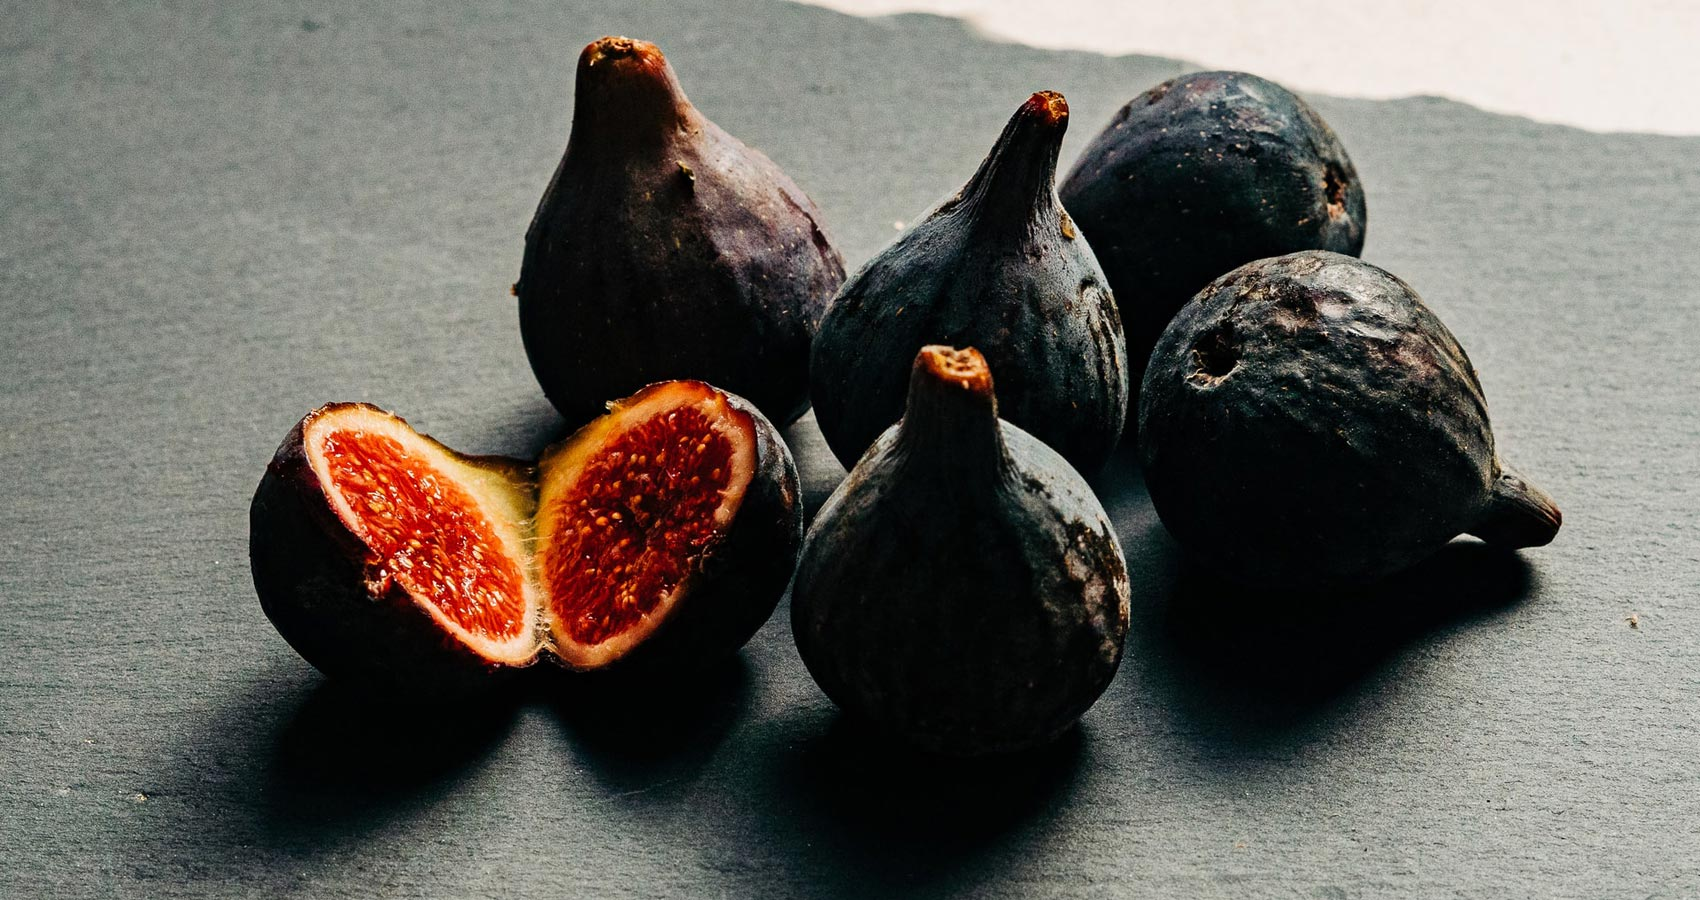 Figs, a poem written by Christian Ward at Spillwords.com